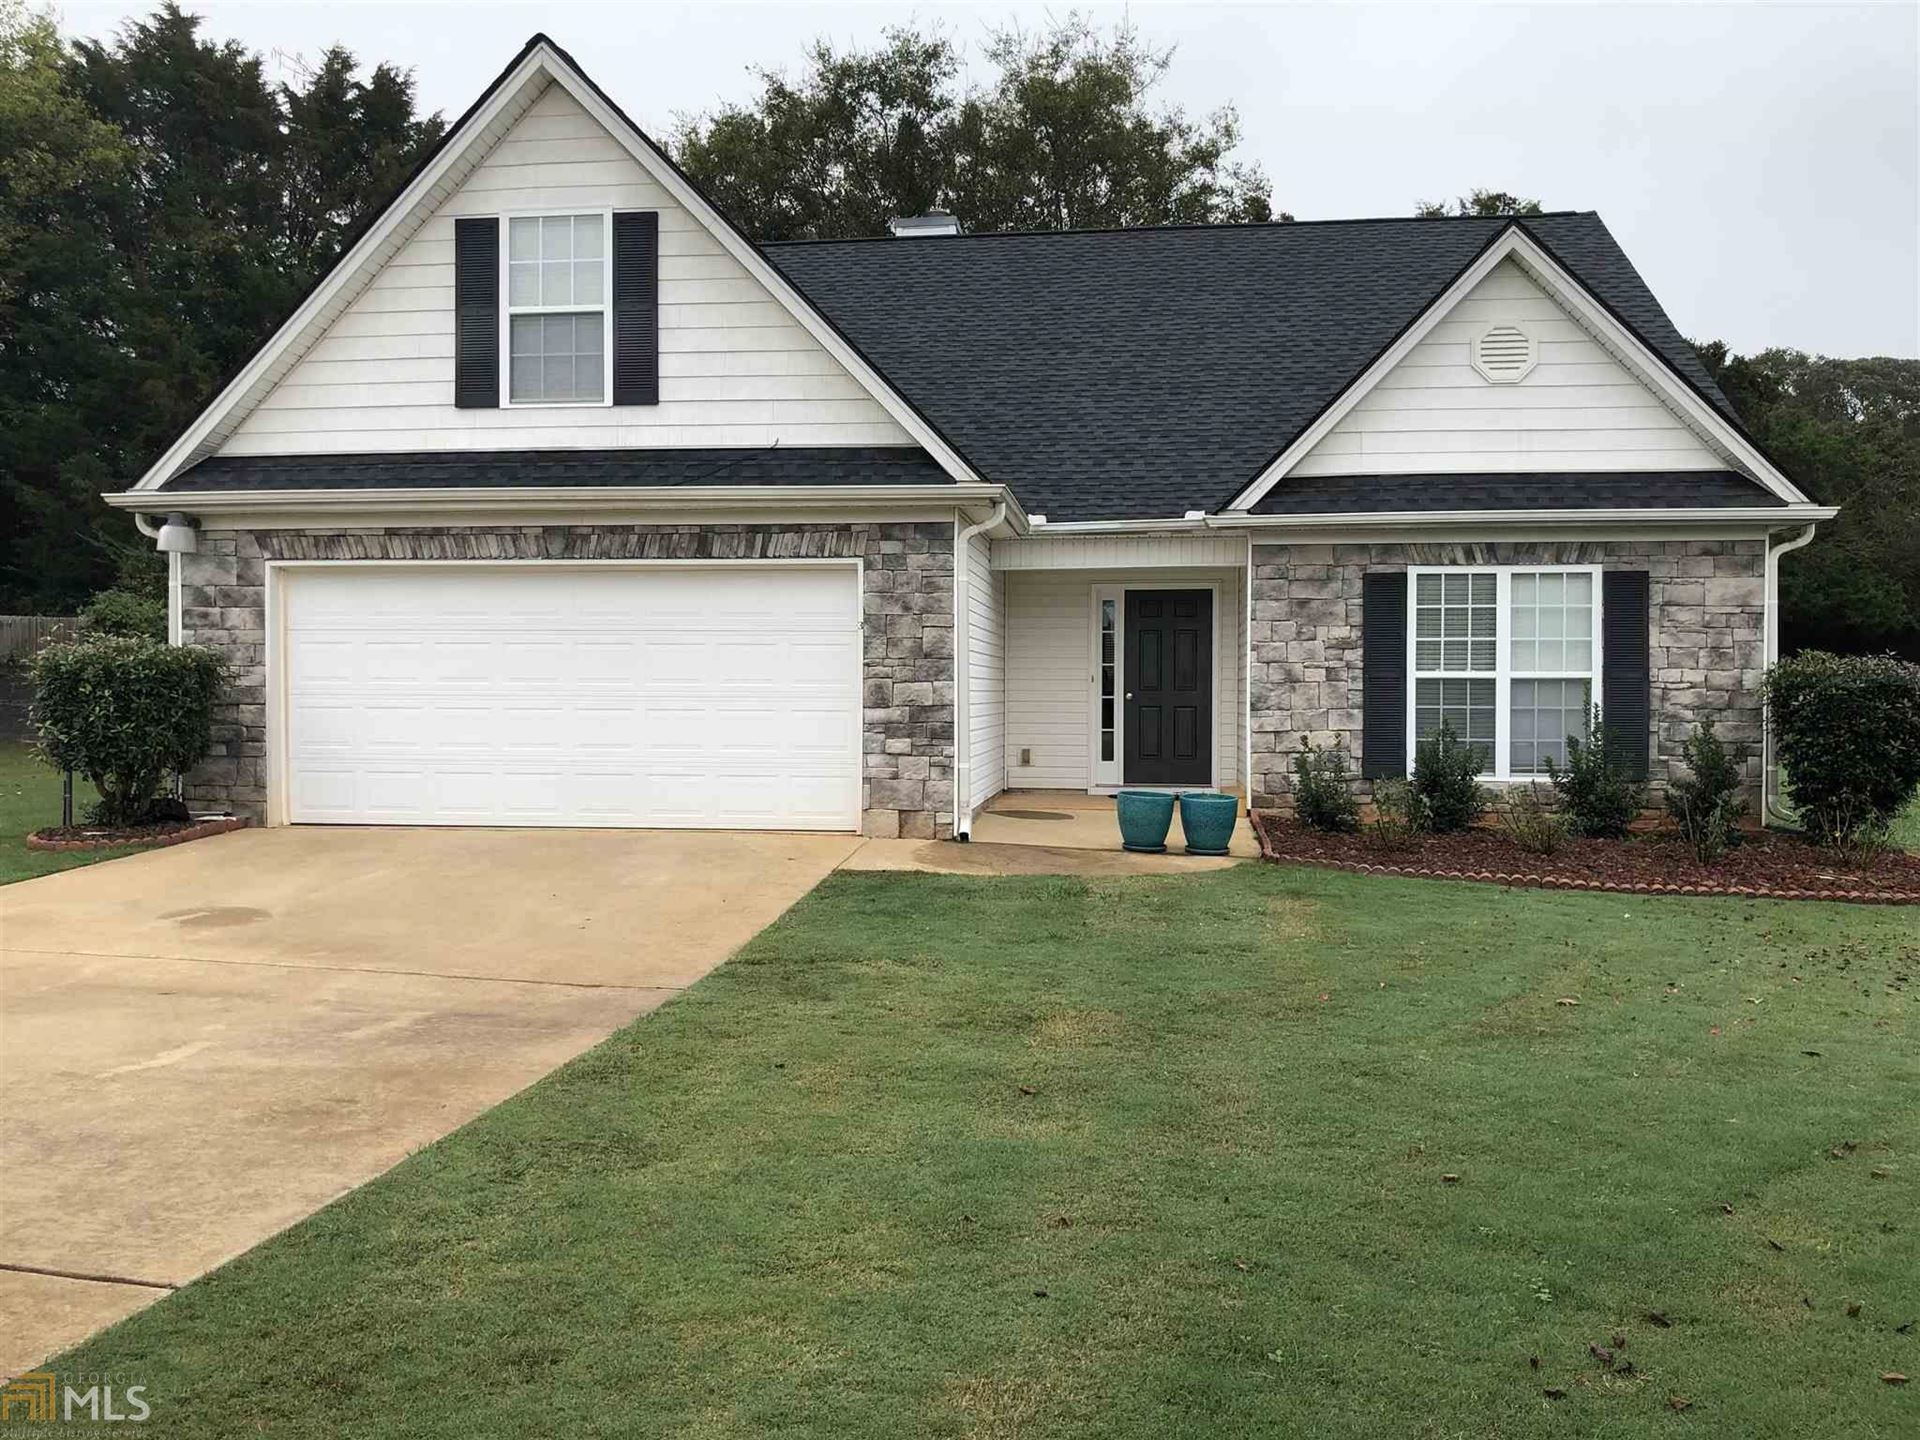 3 Hastings Ct, LaGrange, GA 30240 - #: 8886070